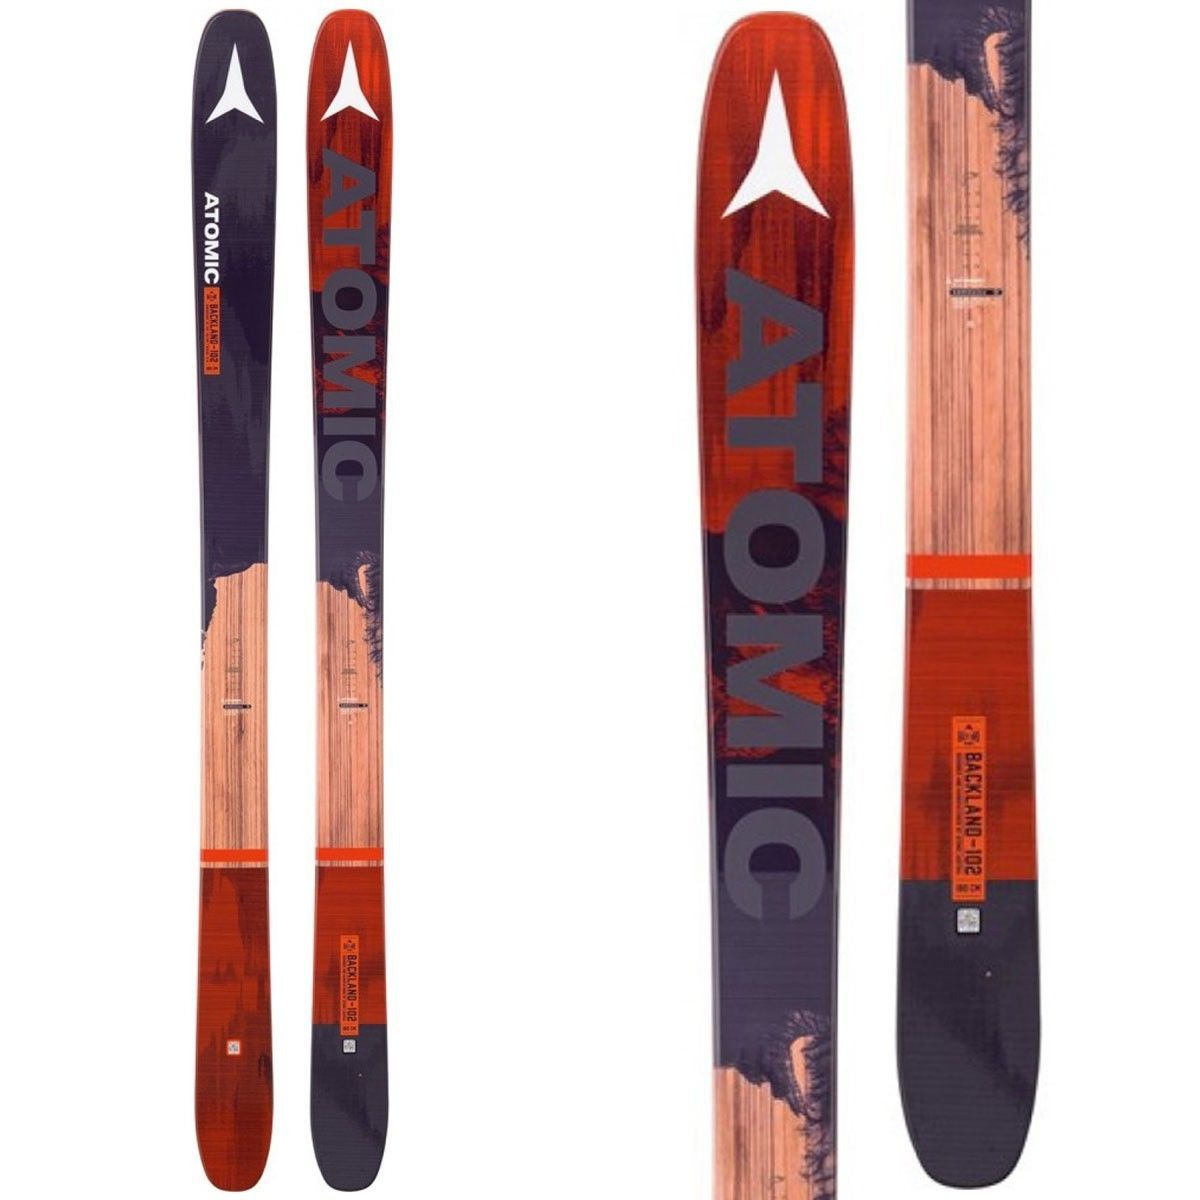 Skis 42814: Brand New! 2017 Atomic Backland 102 Skis W